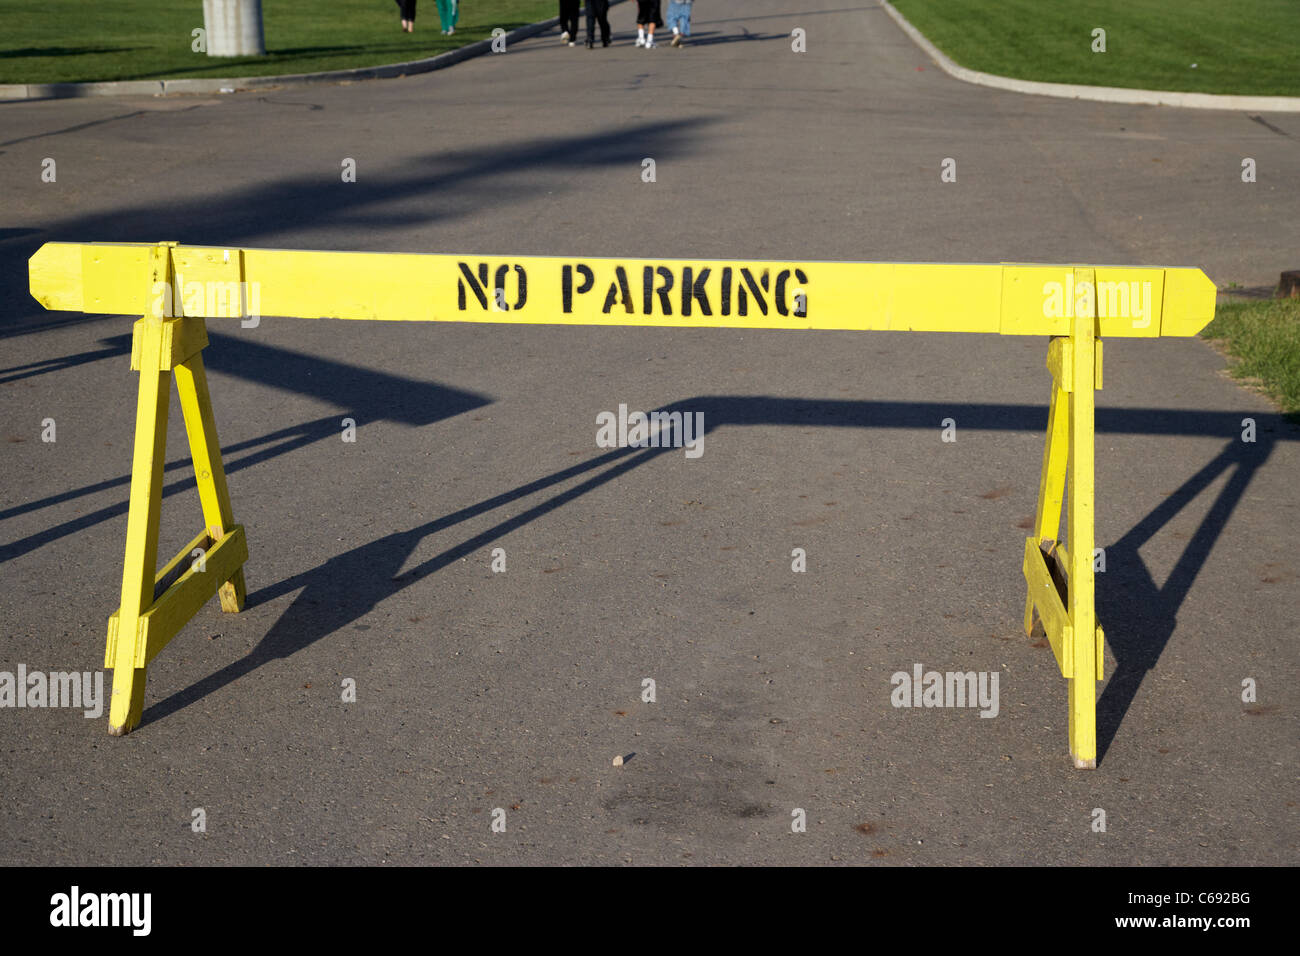 no parking temporary road barrier Saskatoon Saskatchewan Canada - Stock Image